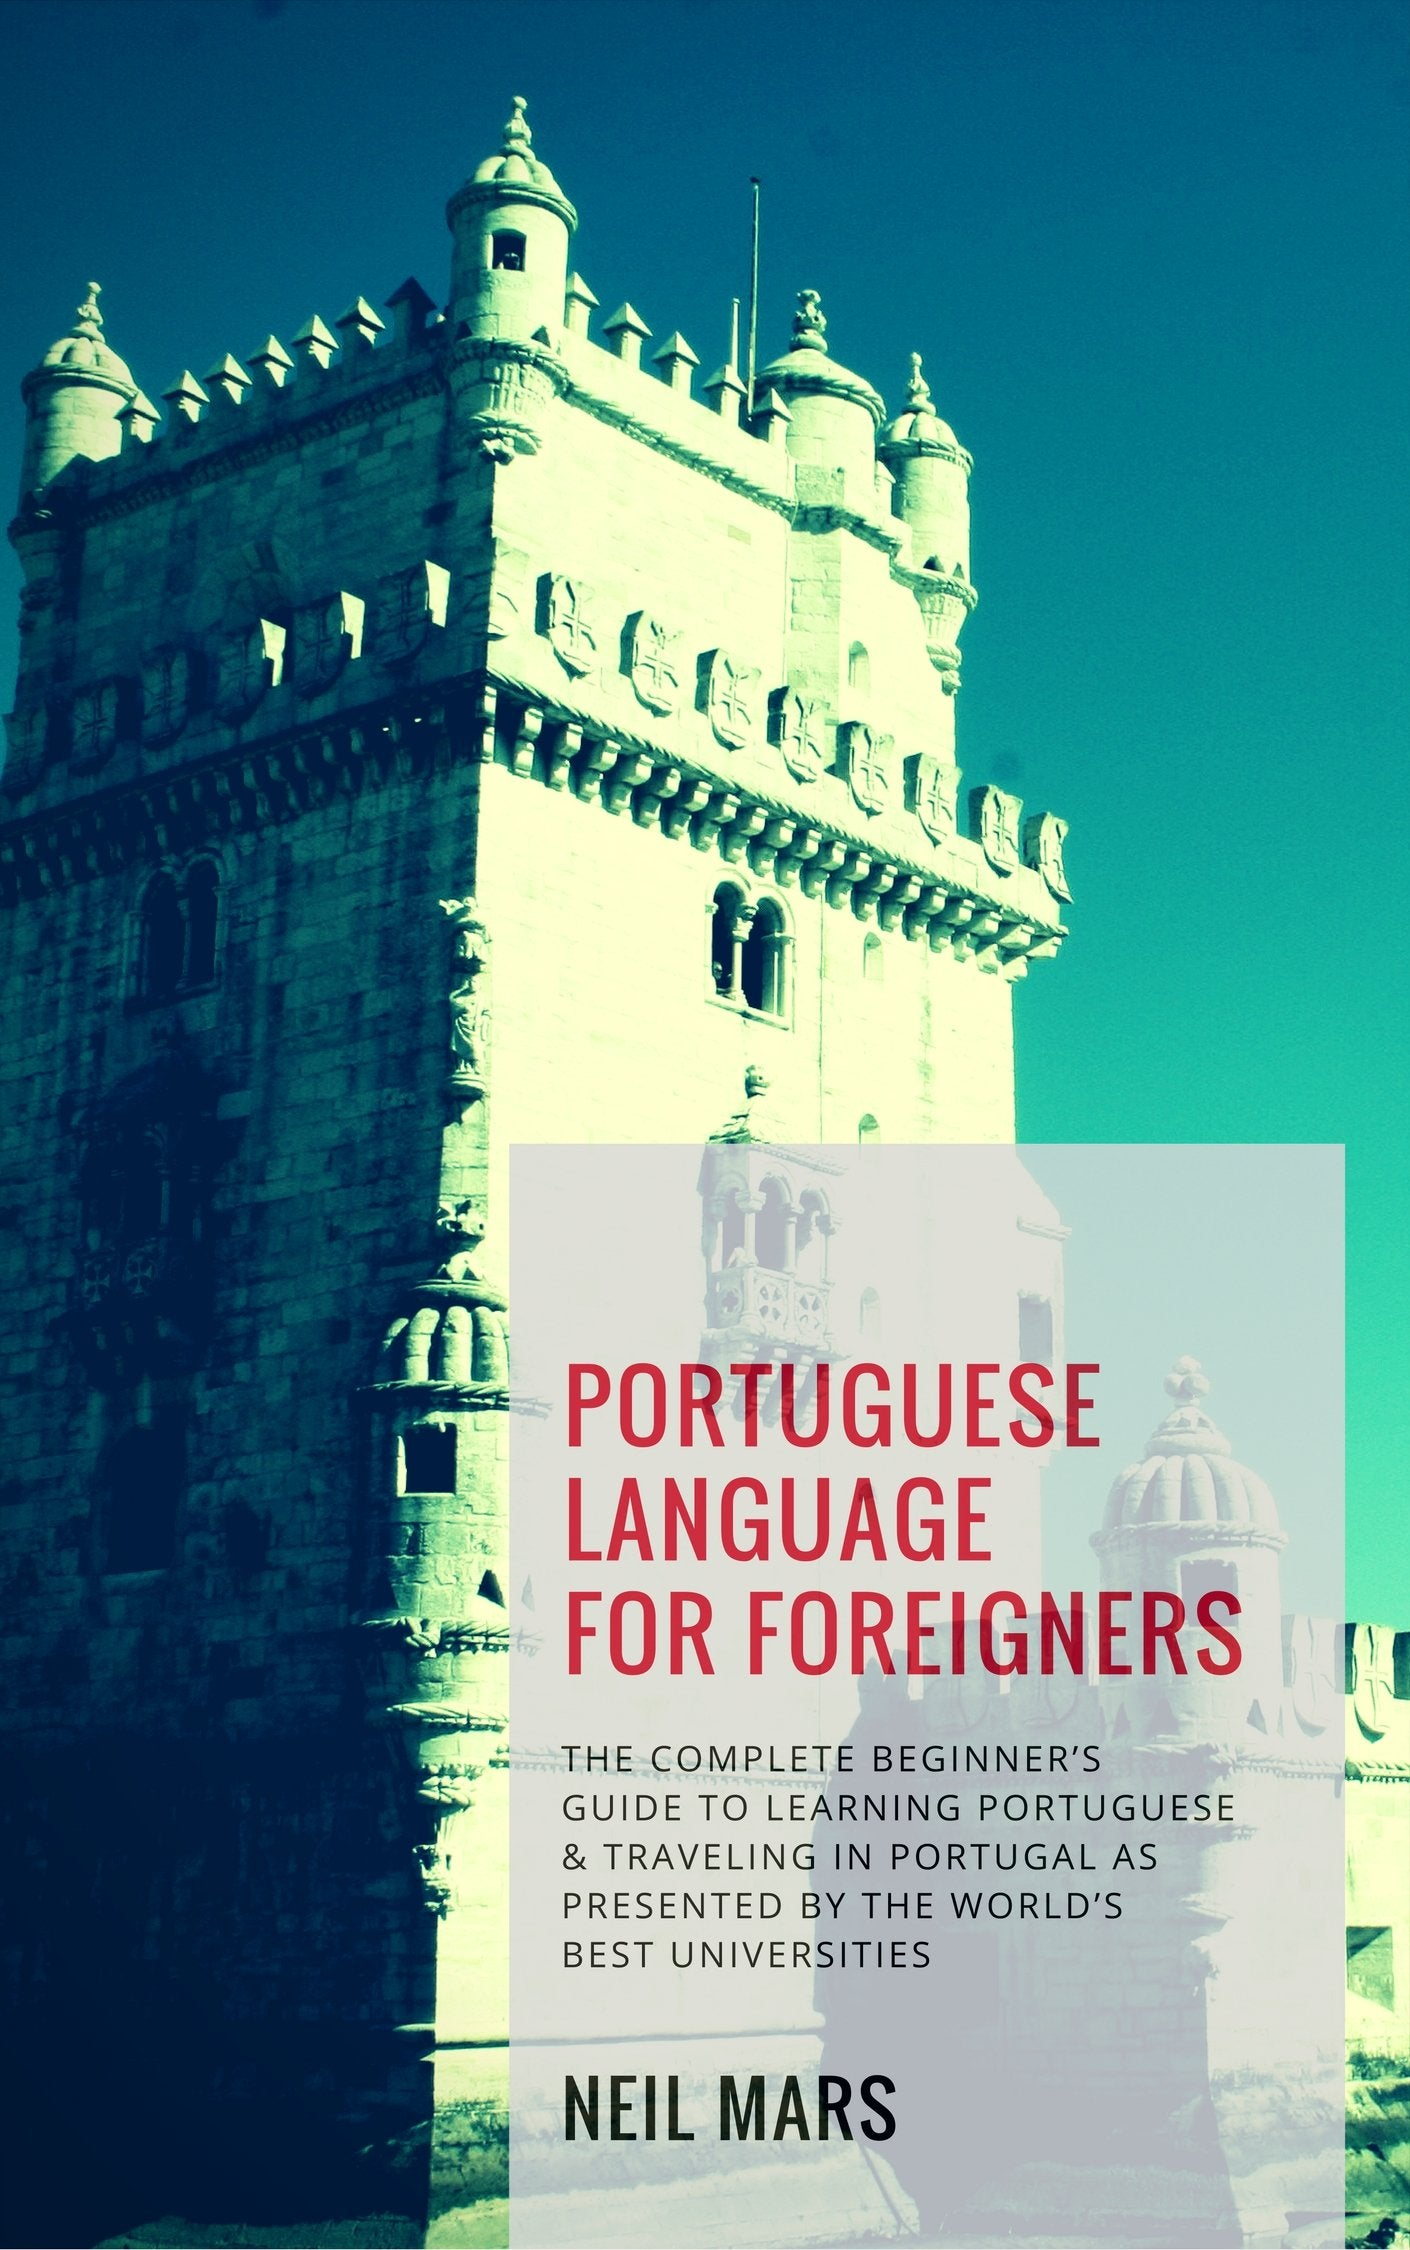 Portuguese Language for Foreigners | 22 Lions